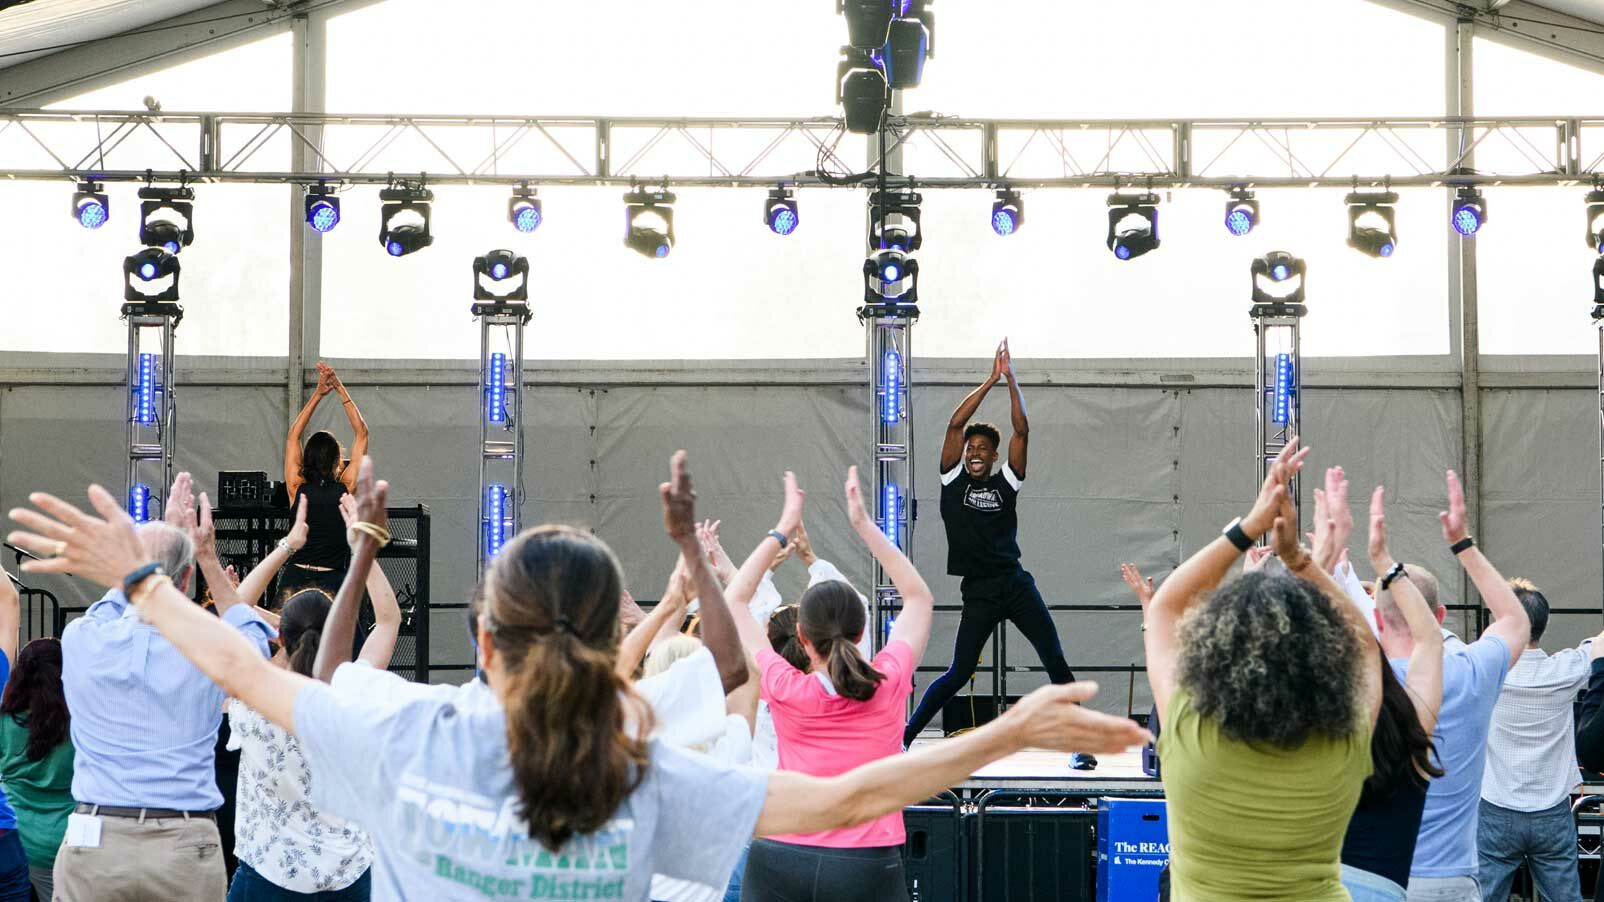 Kennedy Center celebrates National Dance Day with three-day festival